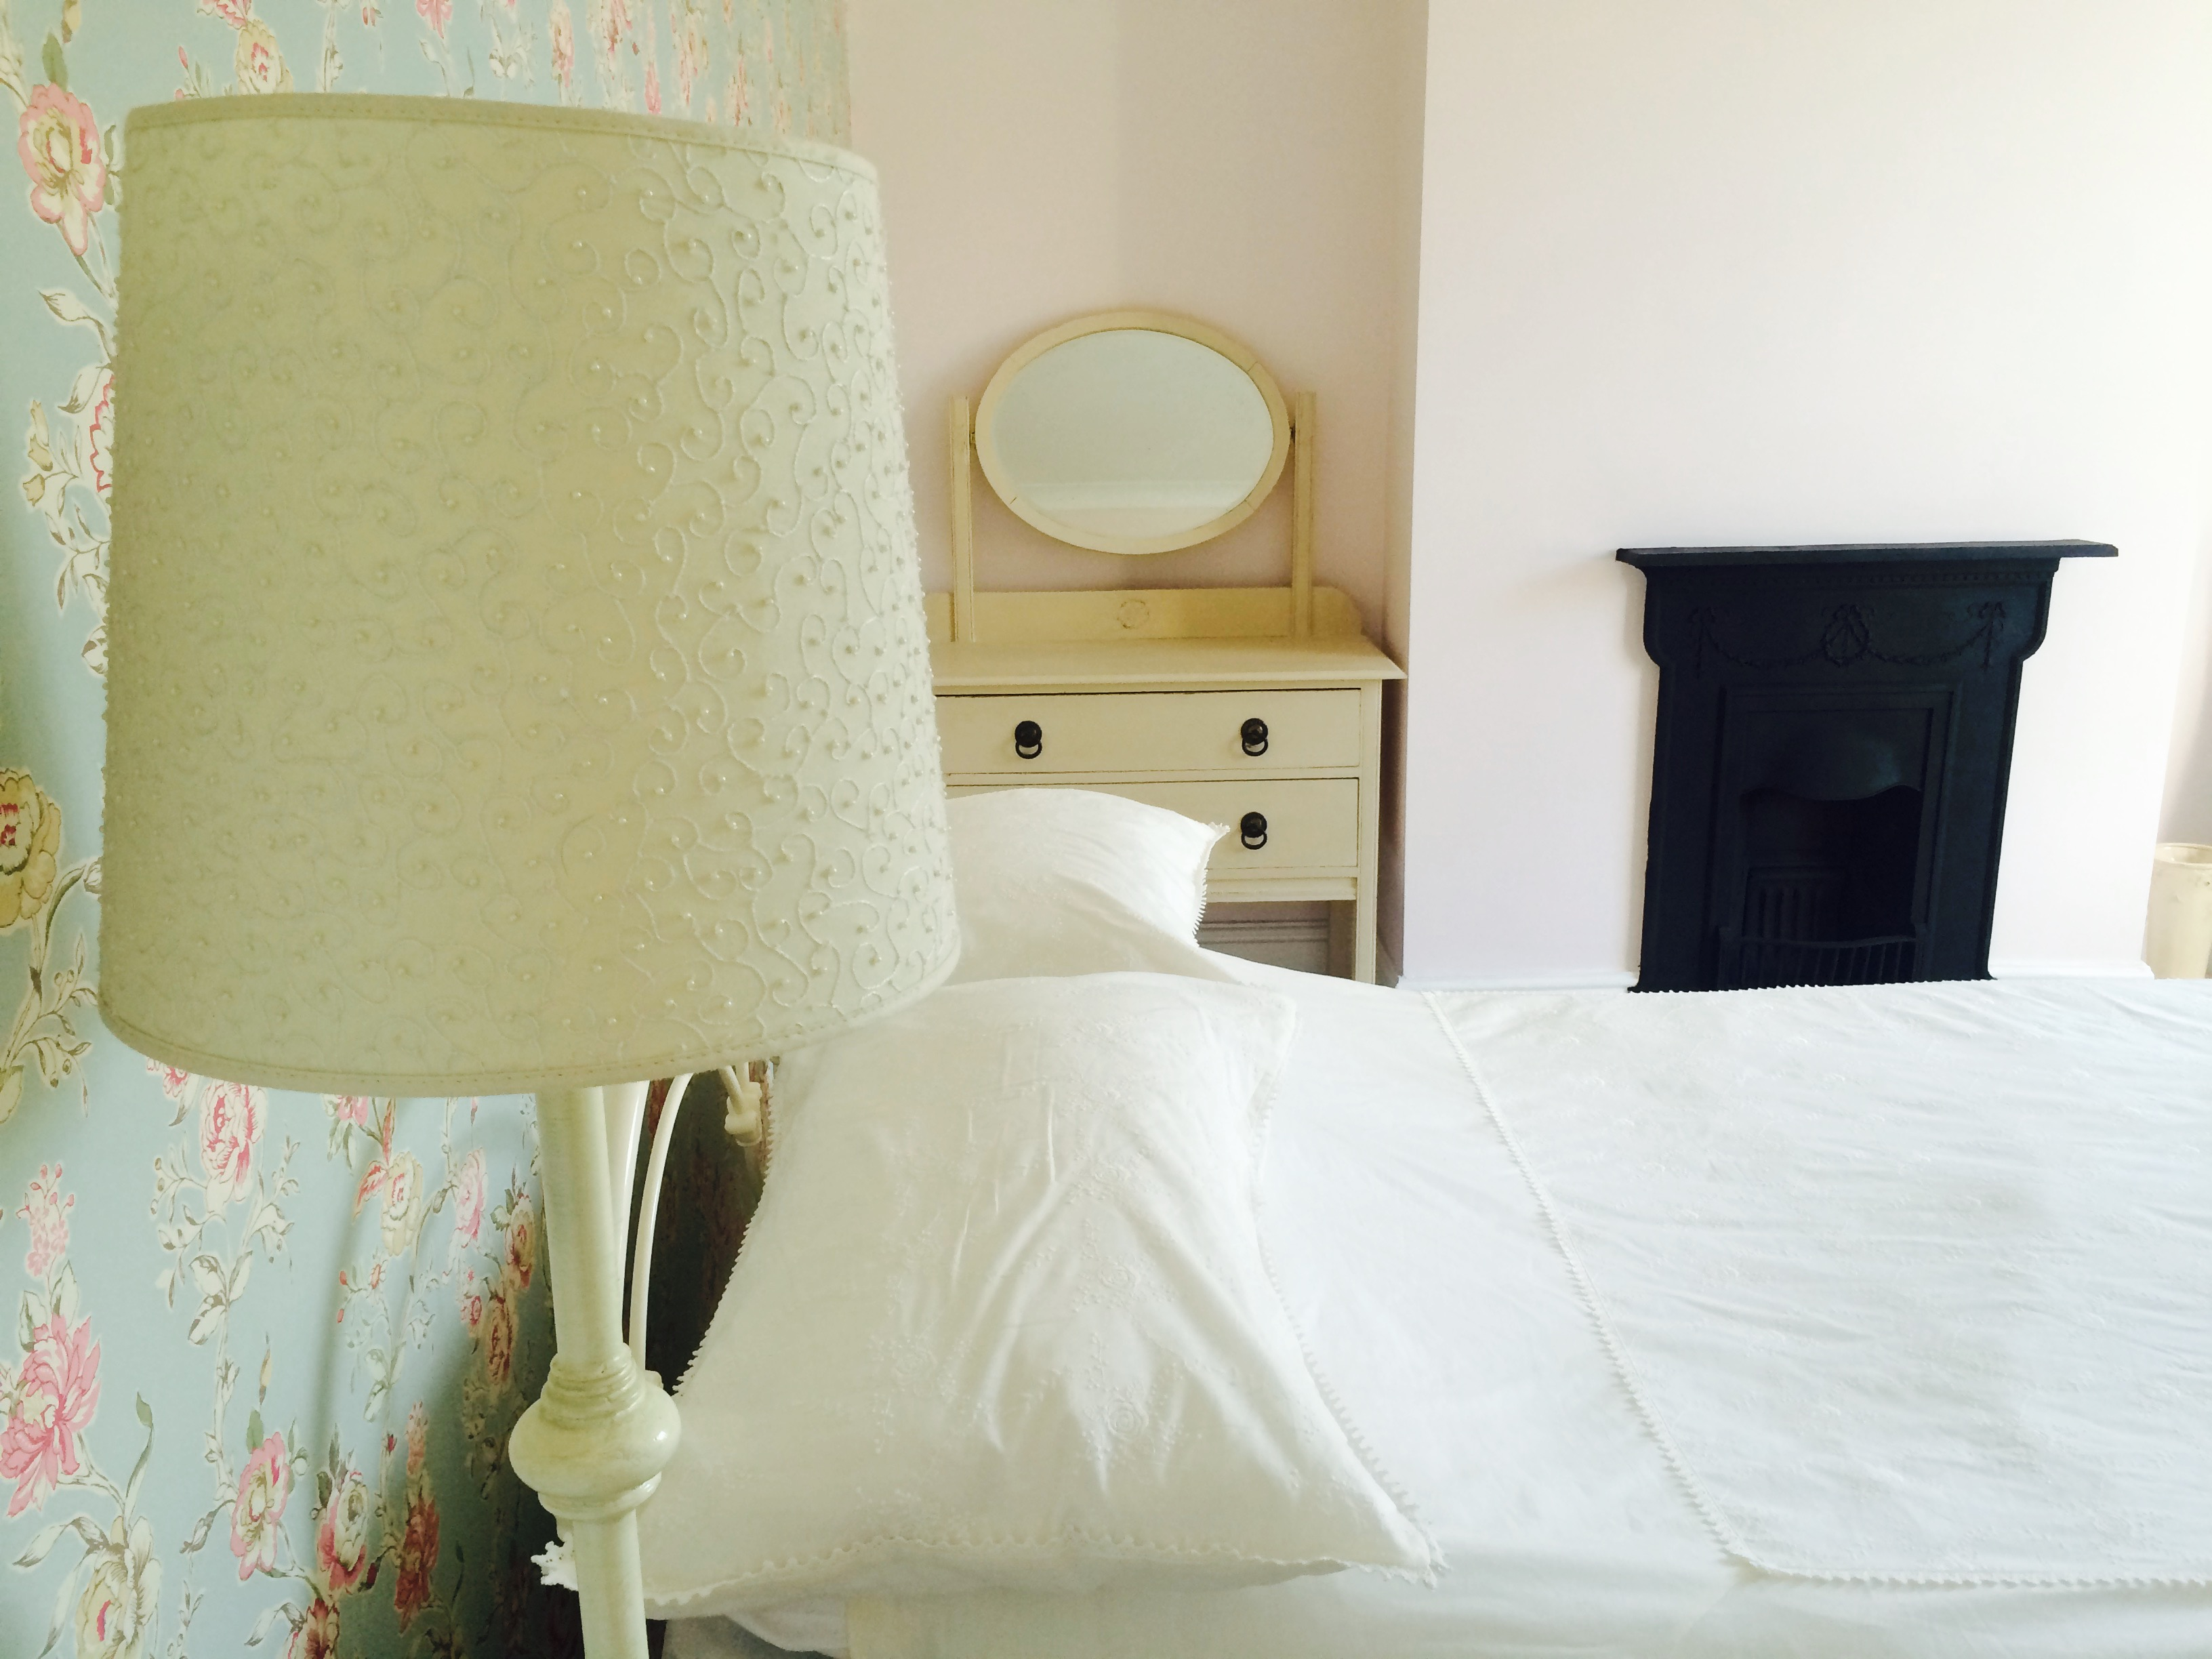 Next Bedroom Accessories Our Floral Shabby Chic Bedroom Makeover Life As Our Little Family